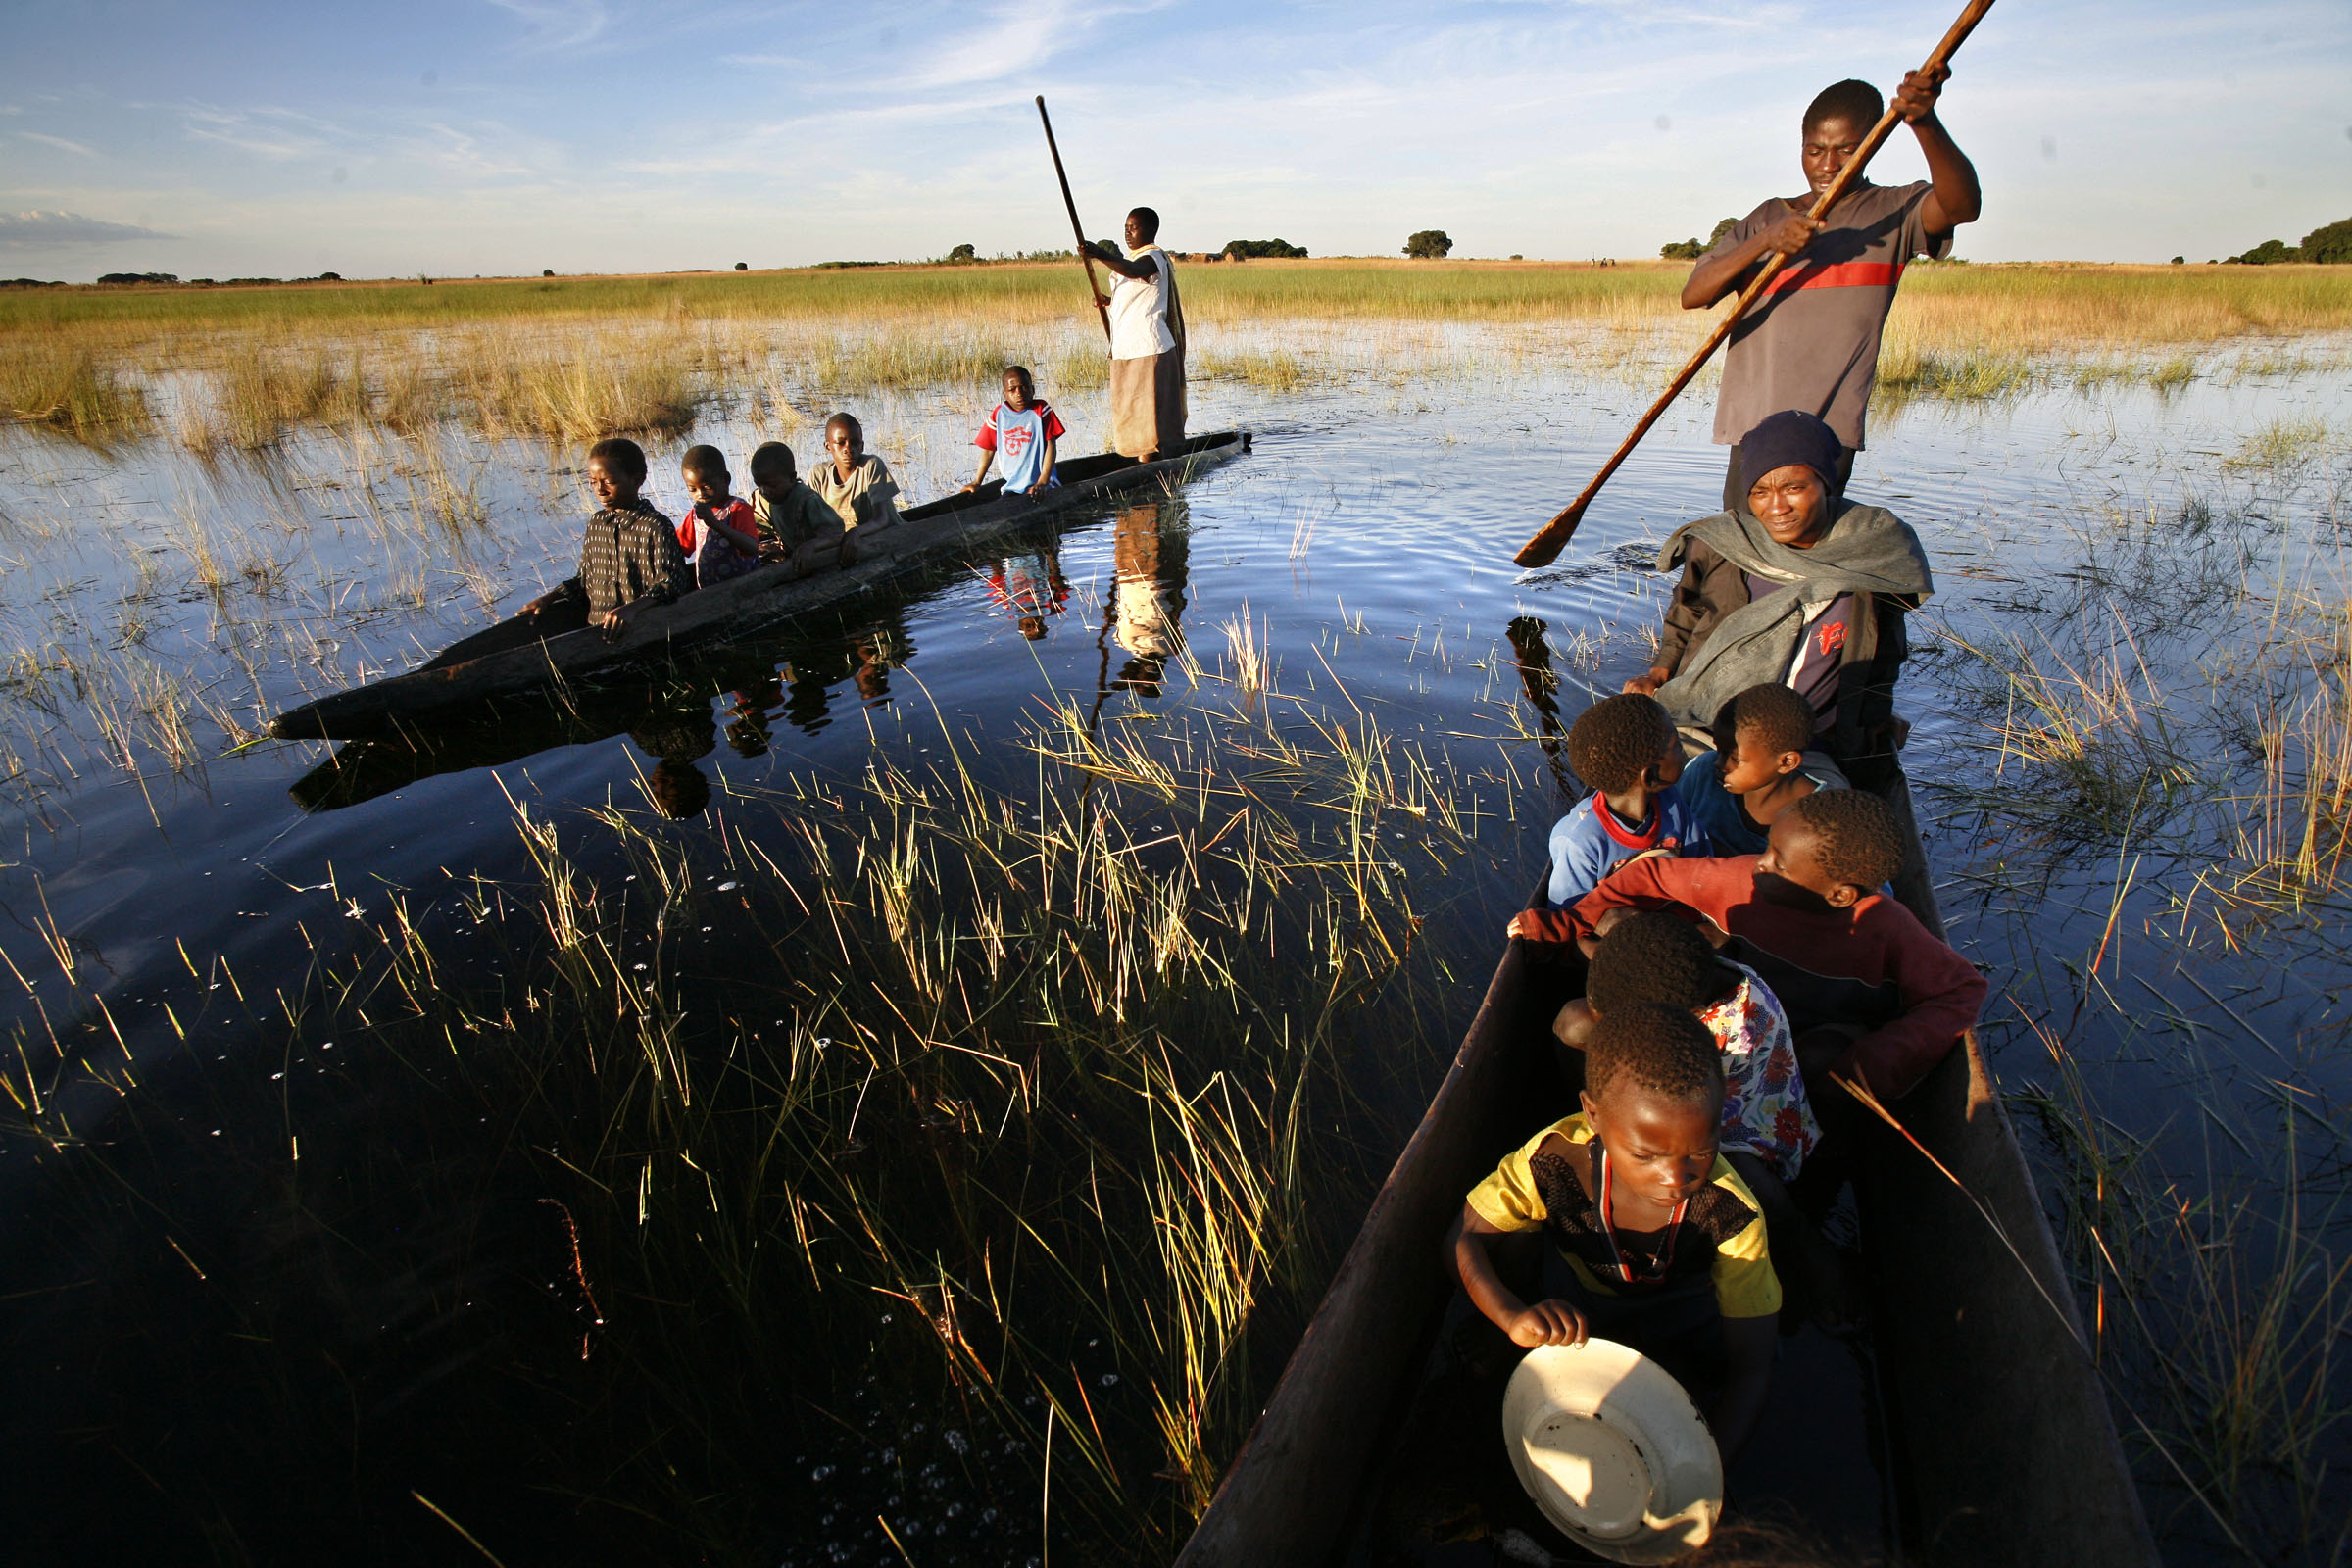 Munalula, 8, sits in the front of a dugout canoe with her lunch bowl, as she and her classmates are carried to school across the flood plains at sunrise. The school receives rations from the United Nations World Food Program to the students who are vulnerable to food insecurity in Mulondo Village, Zambia.